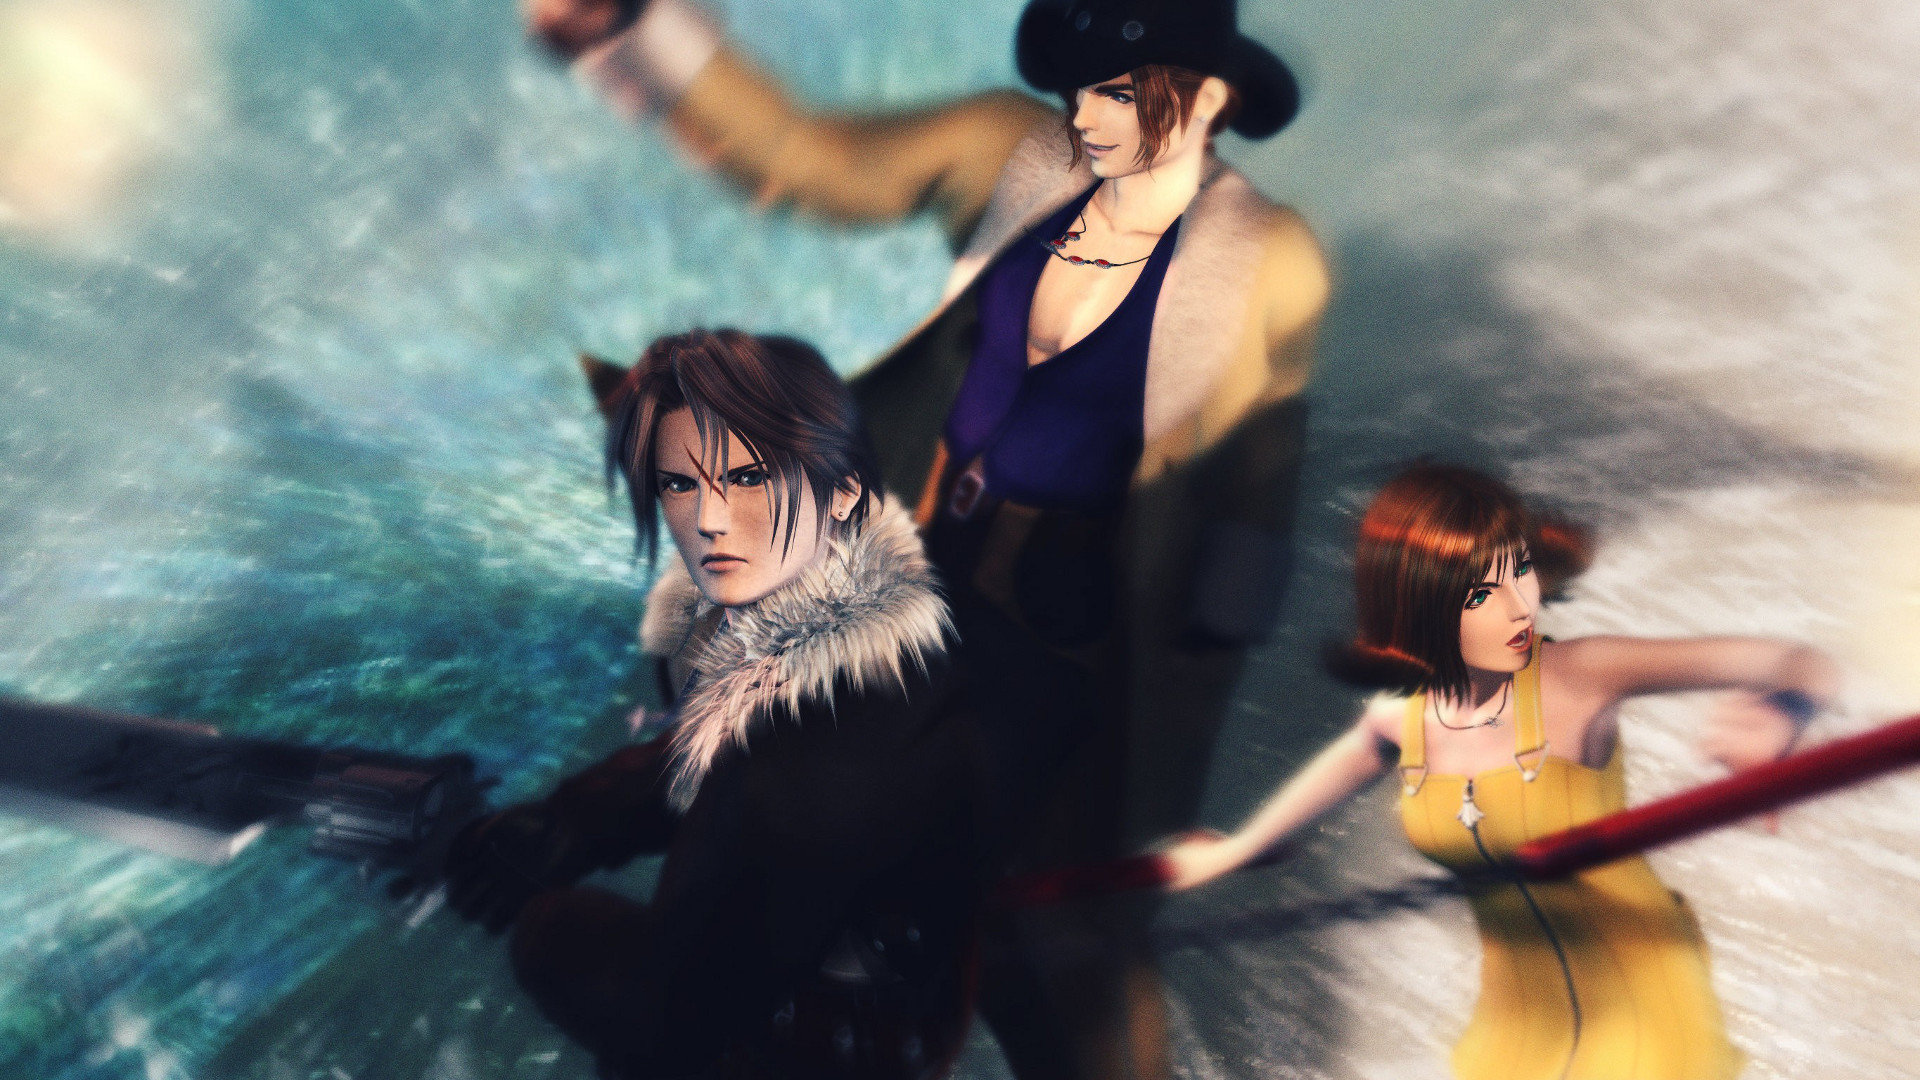 ff8 full movie download 1080p